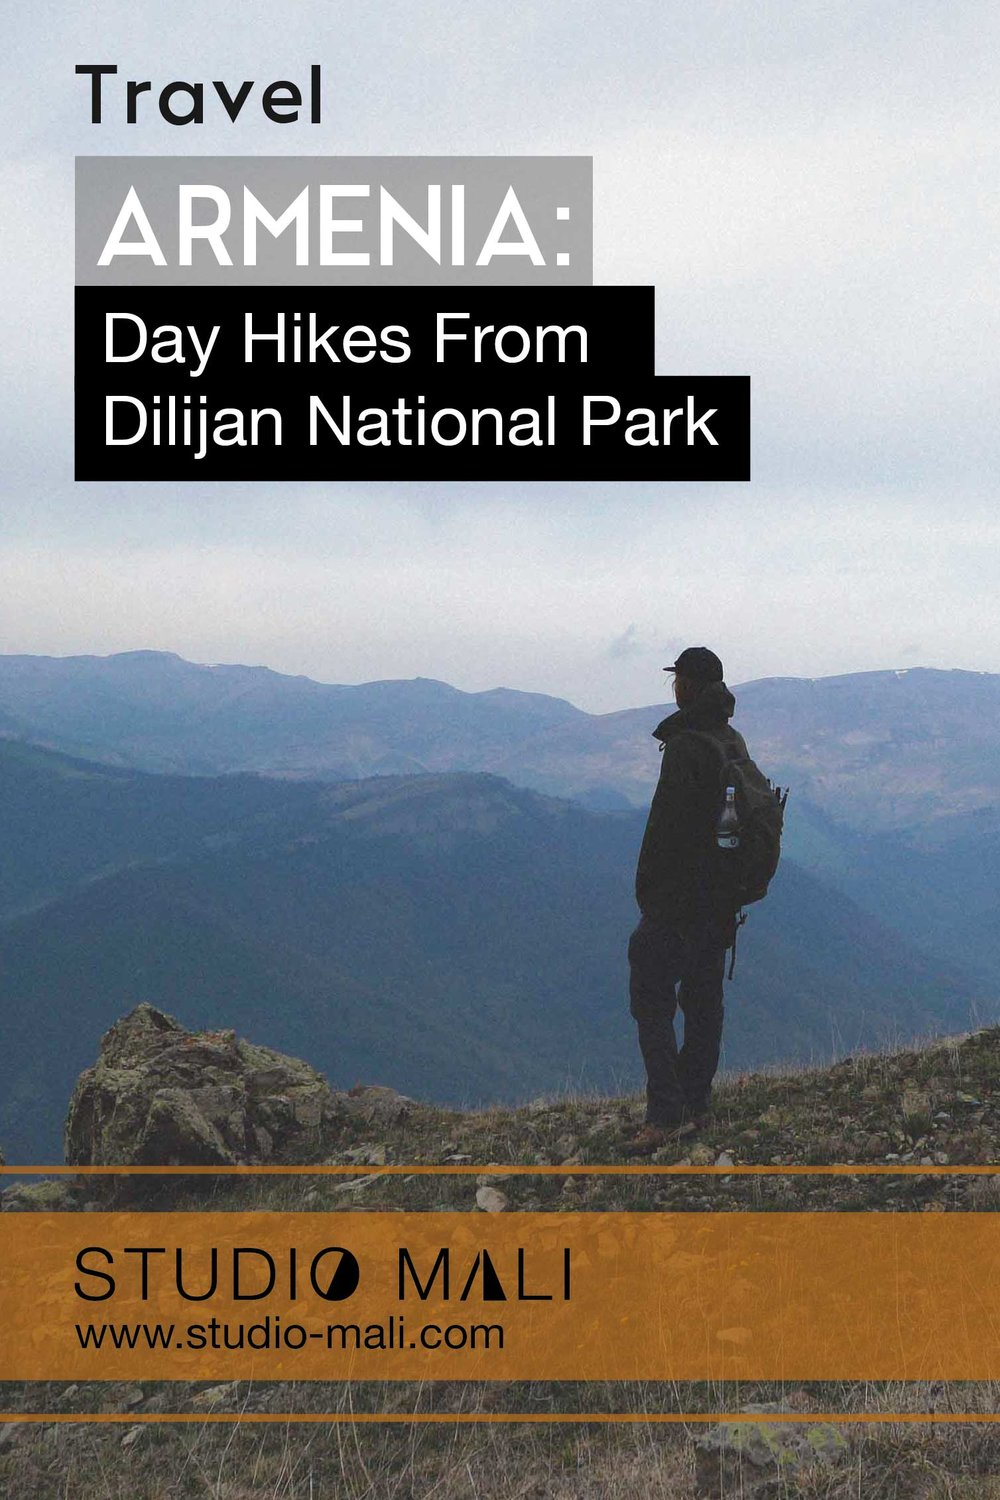 Armenia - Day Hikes From Dilijan National Park, by Studio Mali.jpg